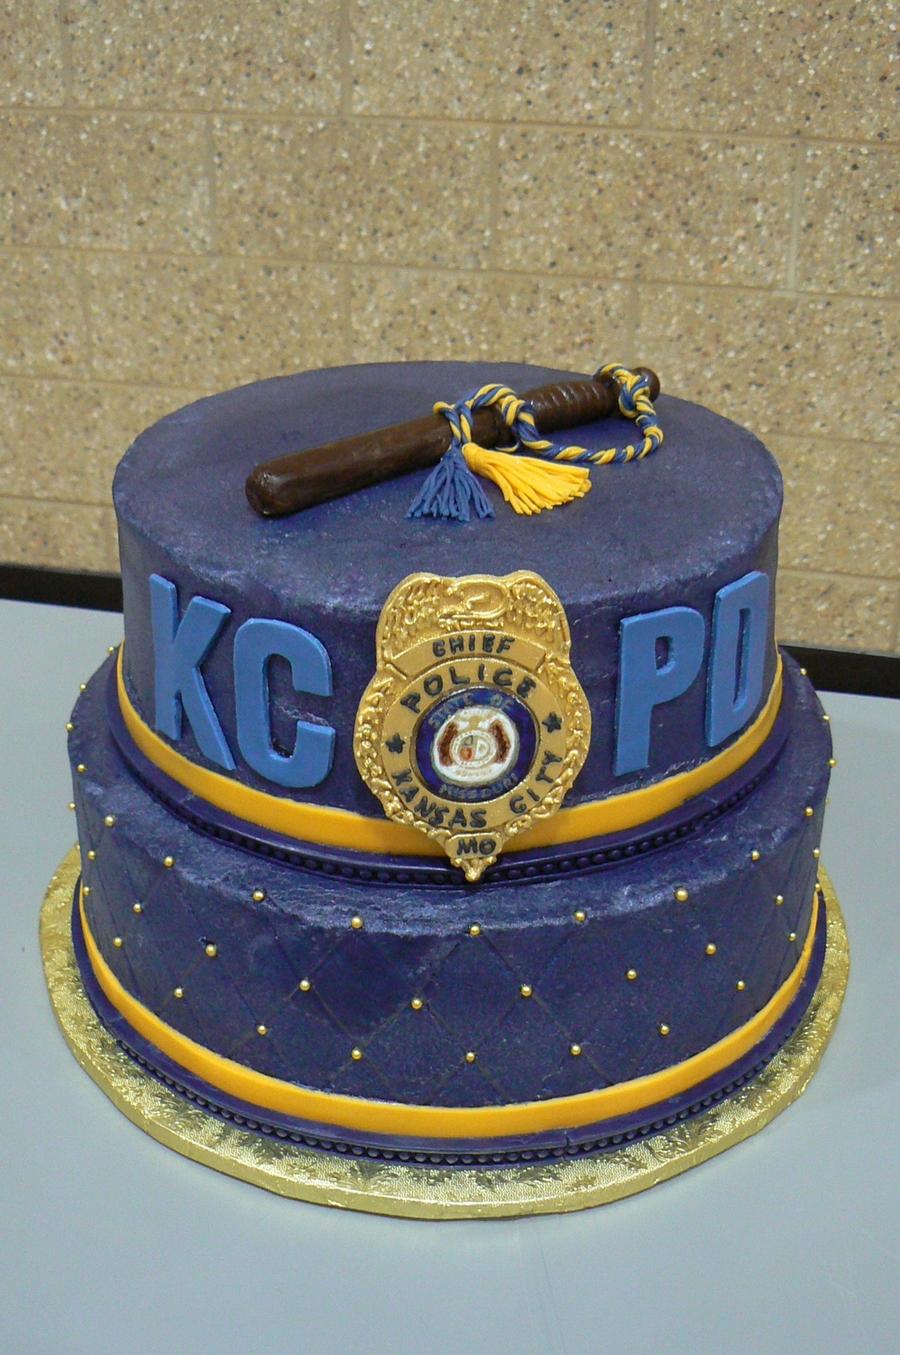 Chief's Retirement Cake on Cake Central